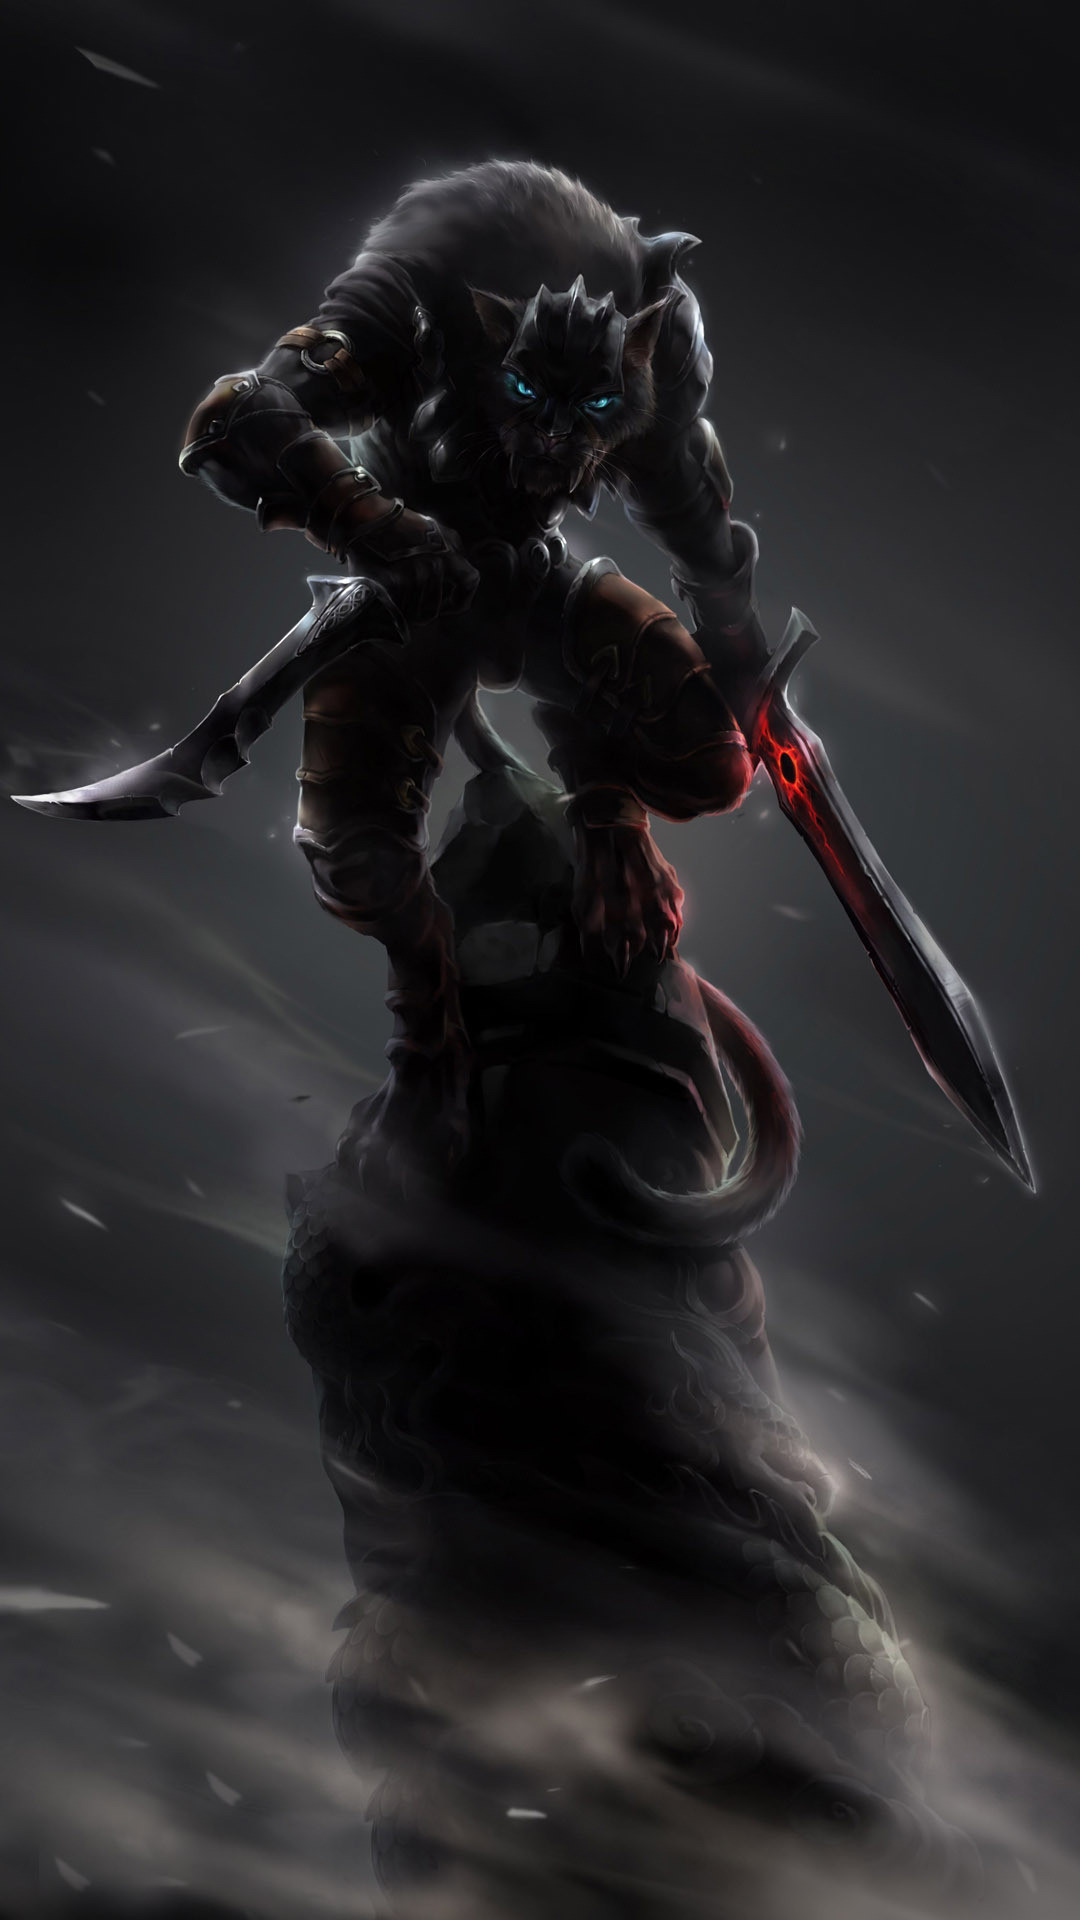 1080x1920 Werewolf warrior Wallpaper